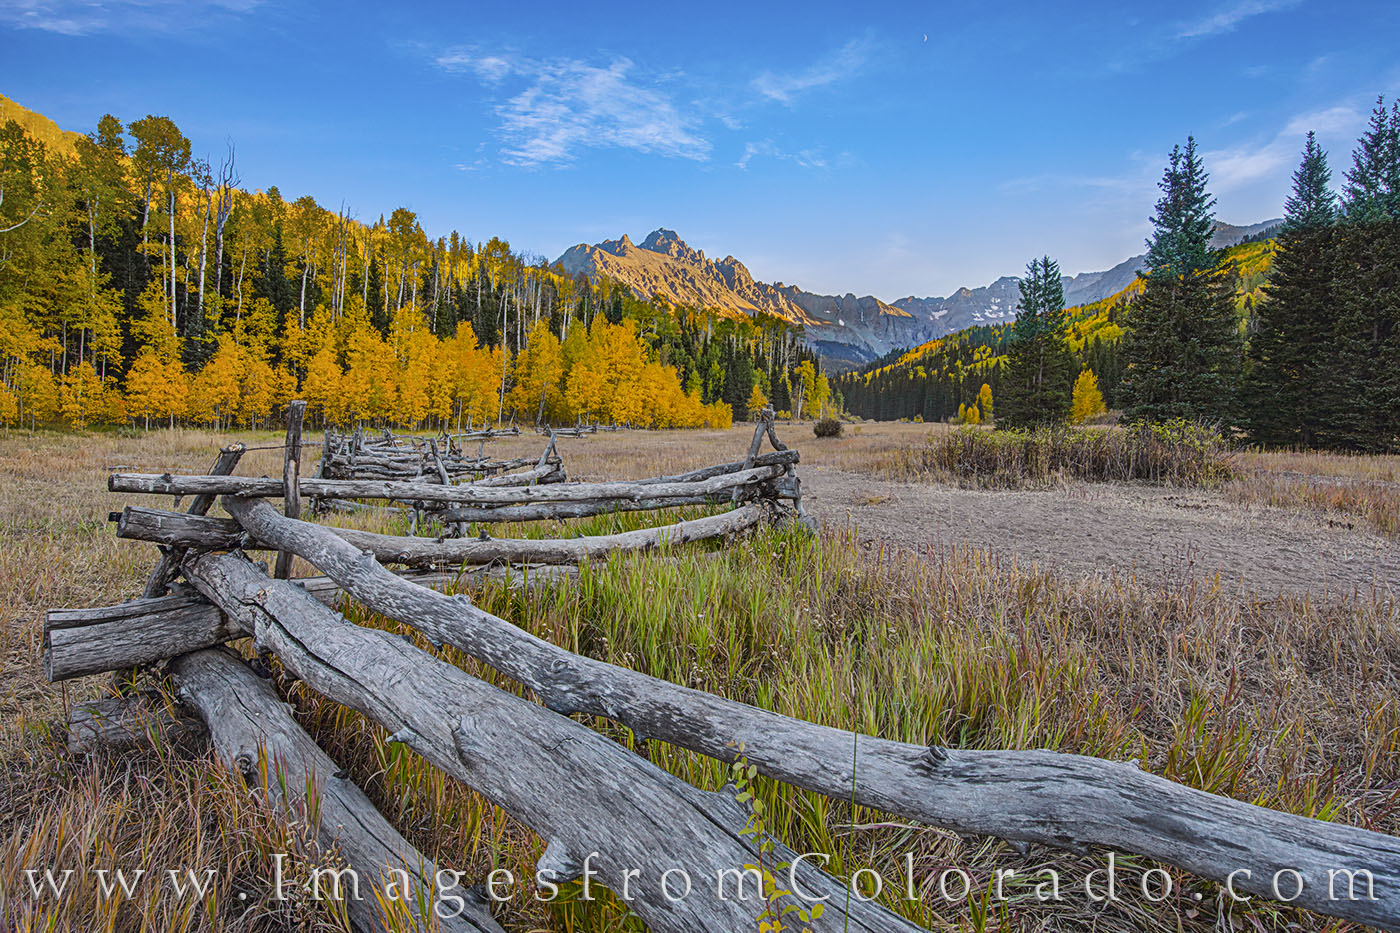 Cr 7, Sneffels, Dallas Divide, fall, autumn, fence, wooden fence, photo